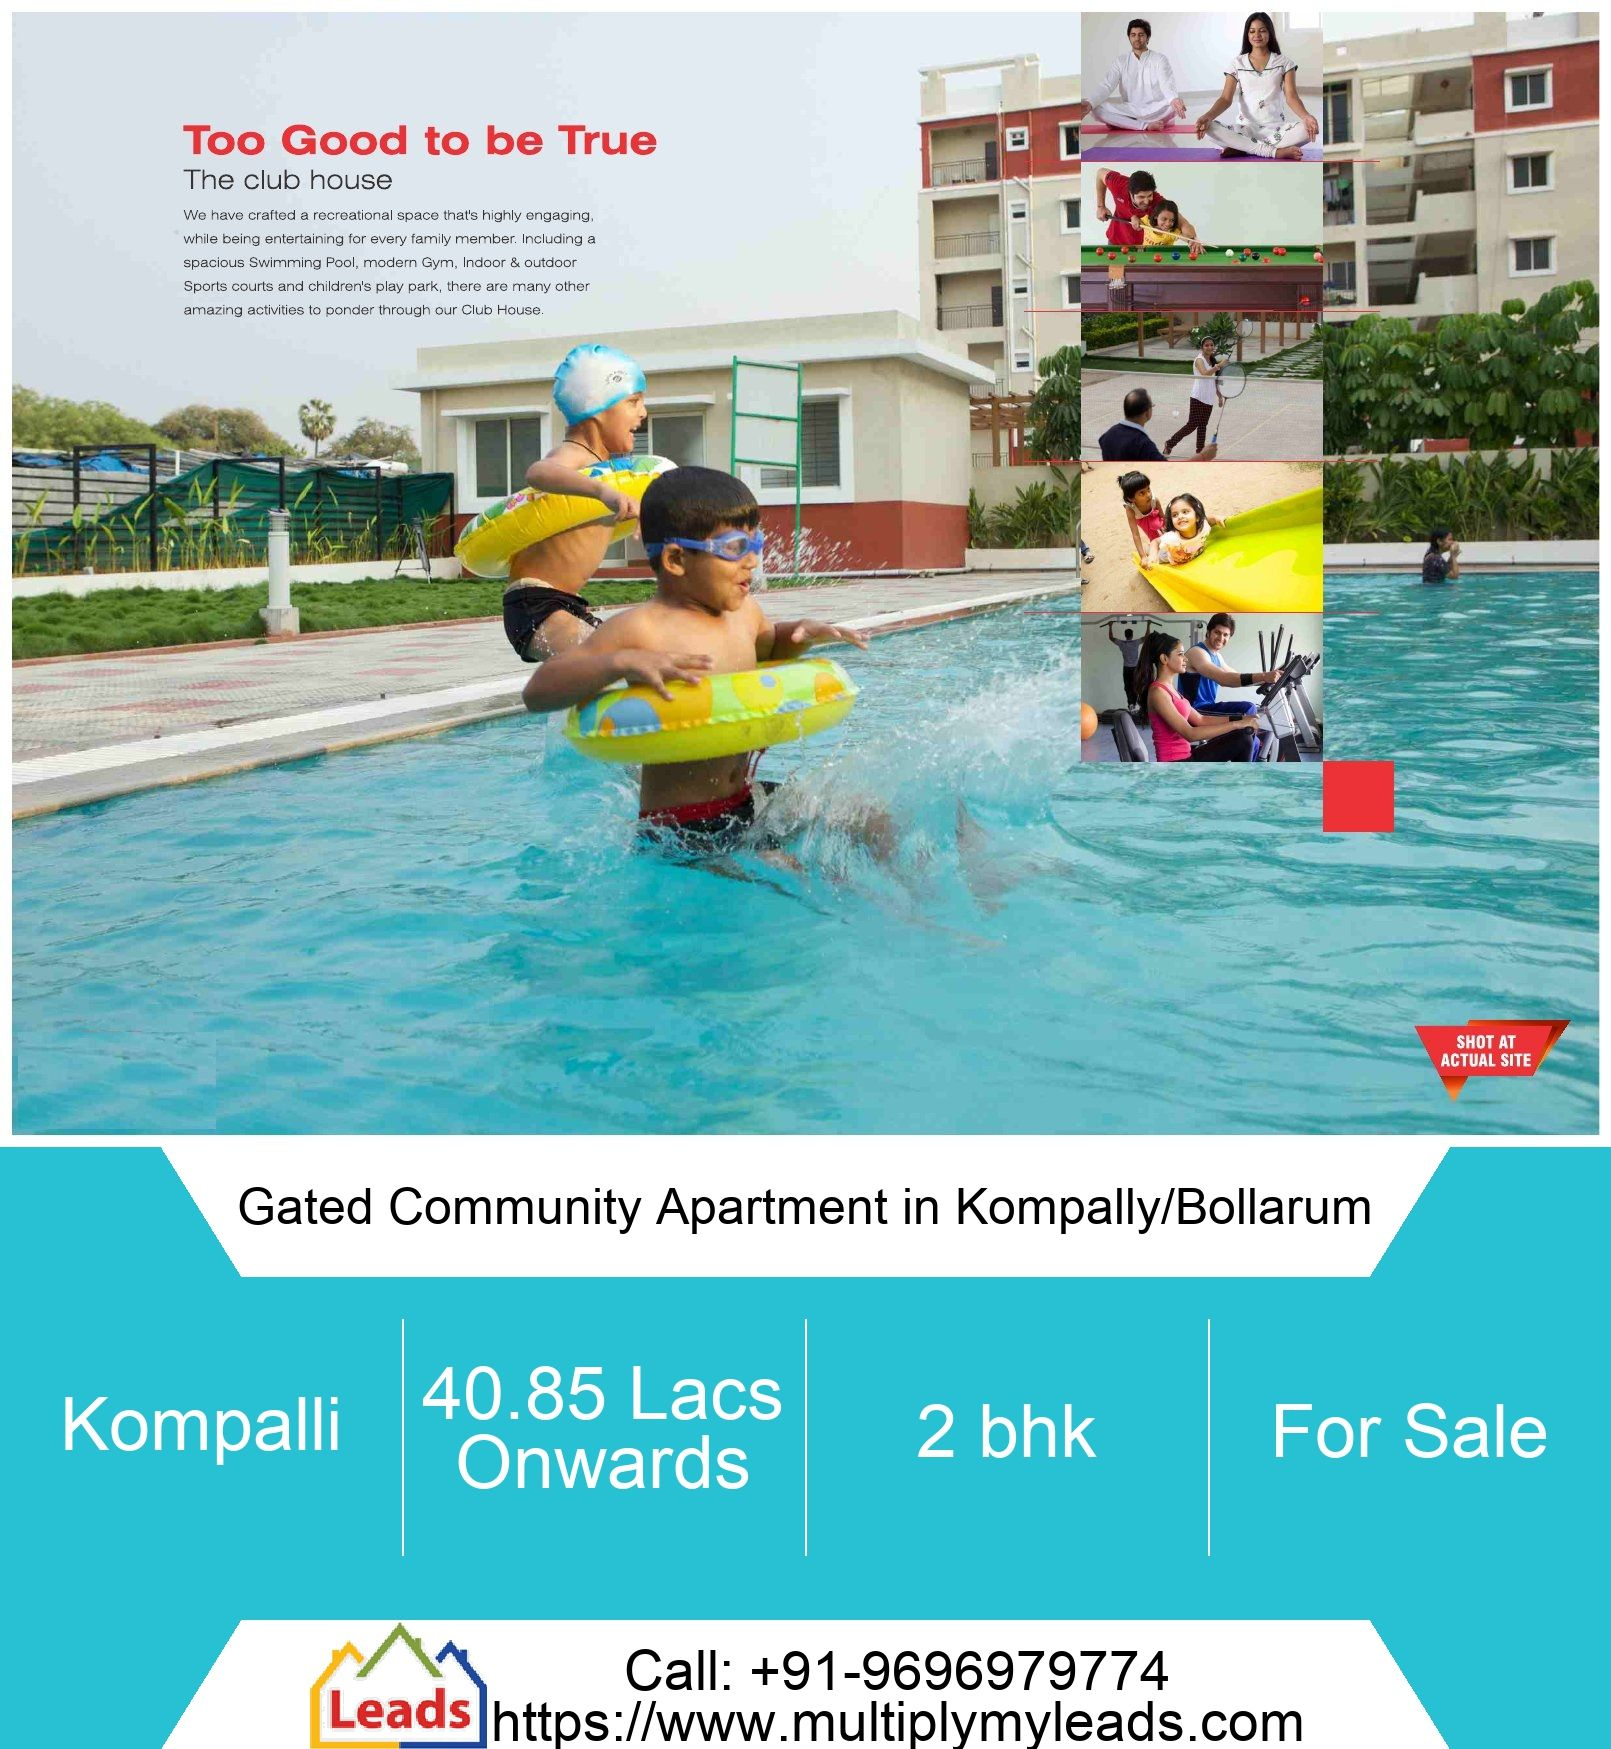 2 Bhk Apartment Flat For Sale 1075 0 Sq Feet 41 0 Lakh In Gated Community Apartment In Kompally Bollarum In 2020 Fire Protection System Gated Community Builtup Area